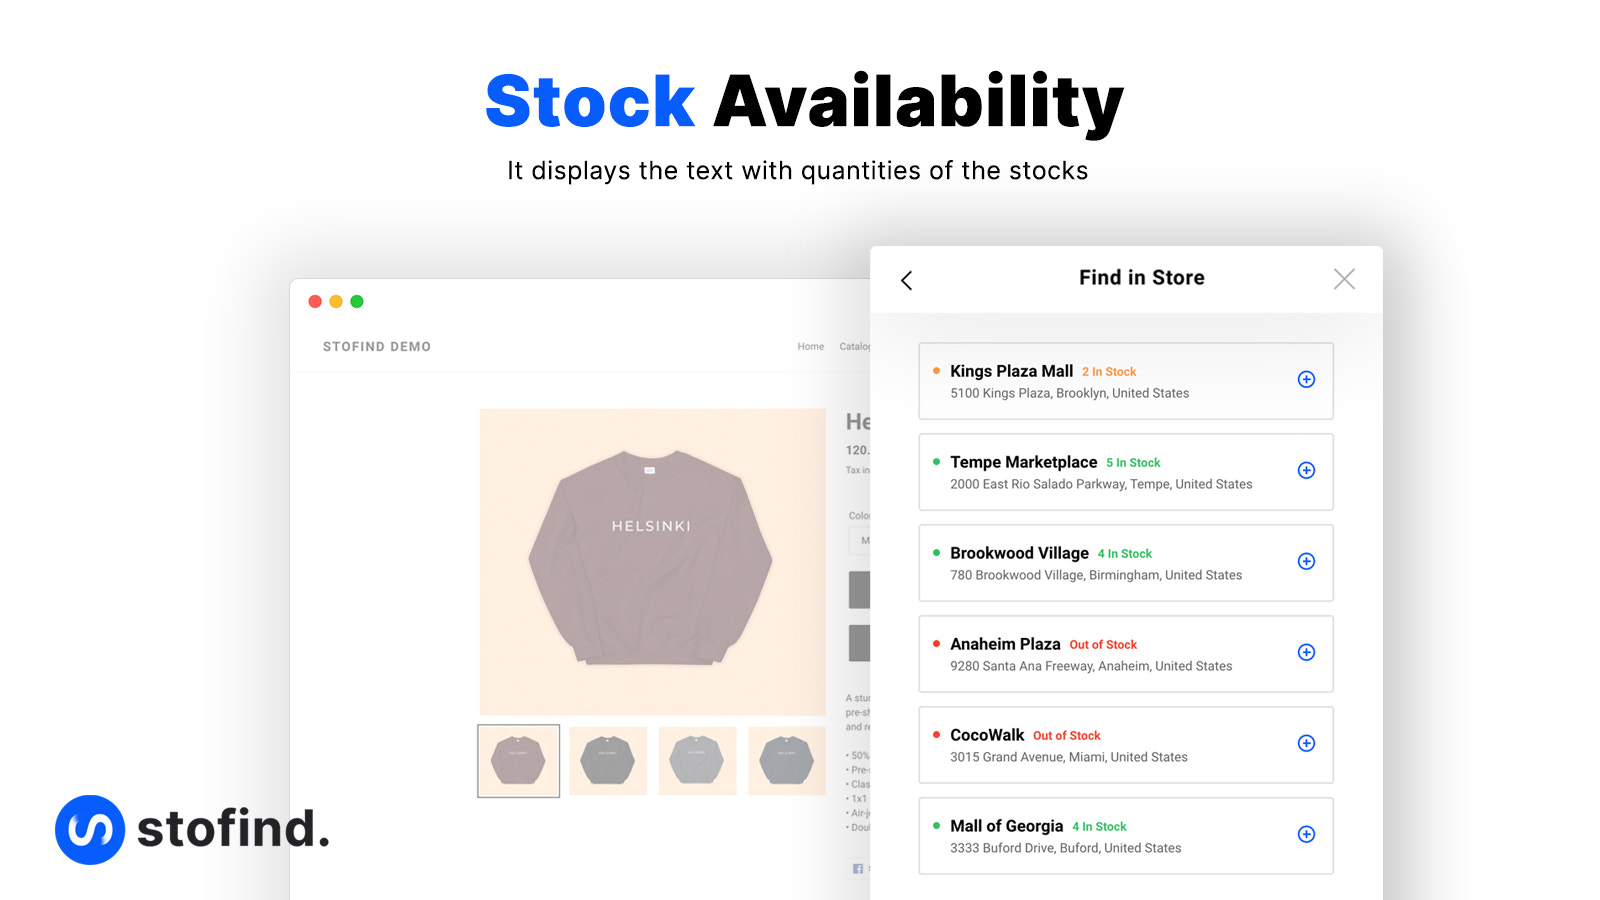 Stock availability with the quantity of the stock